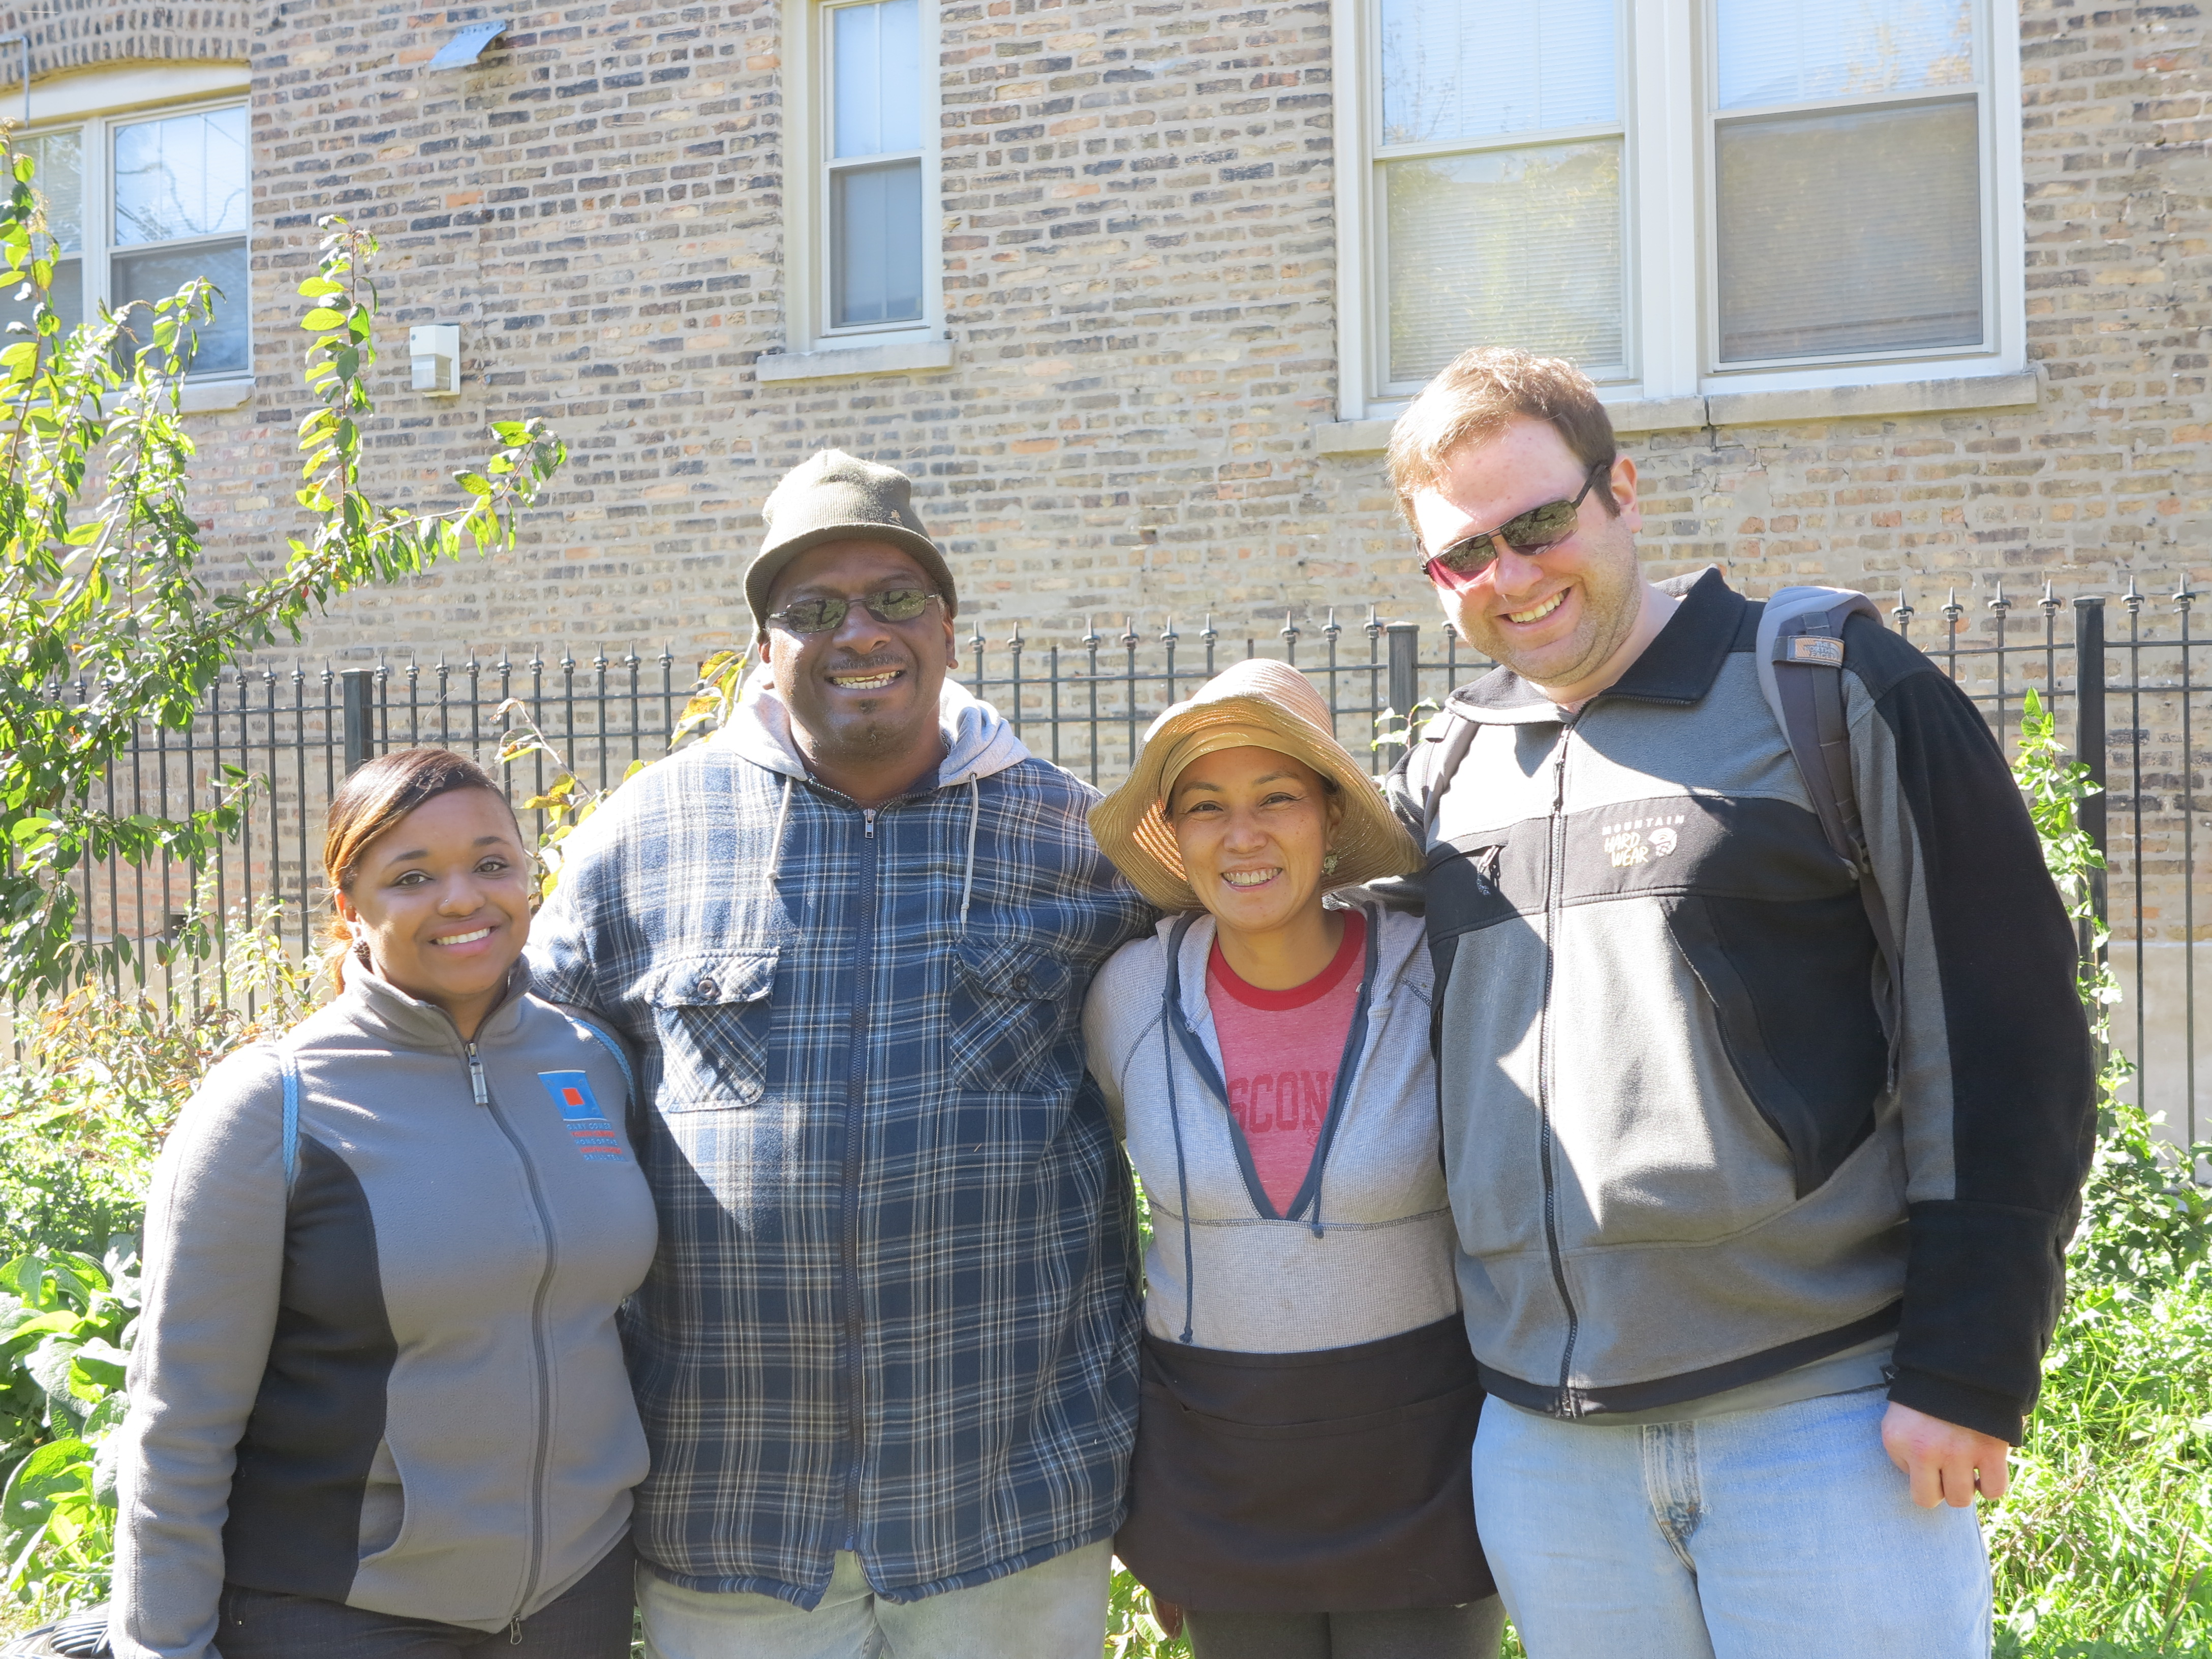 PPS Students  visiting community garden in North Lawndale